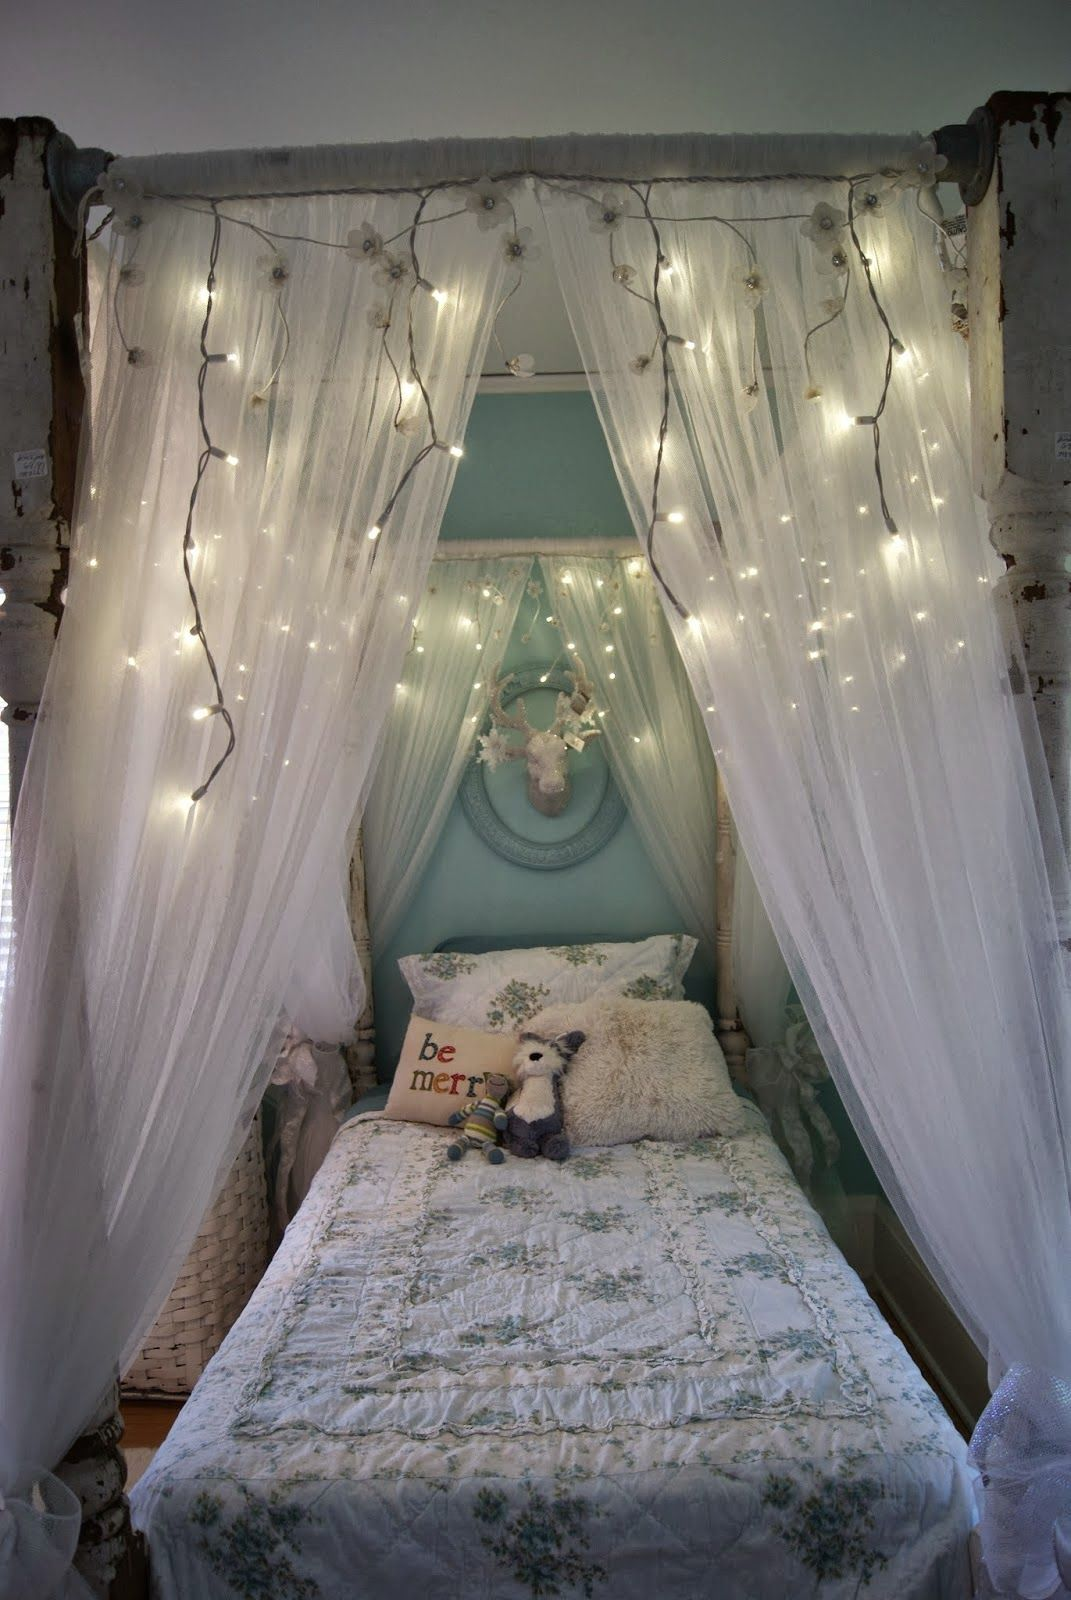 bed canopy ideas bedroom luxury curtains with white diy headboard home garden casasugar & bed canopy ideas bedroom luxury curtains with white diy headboard ...